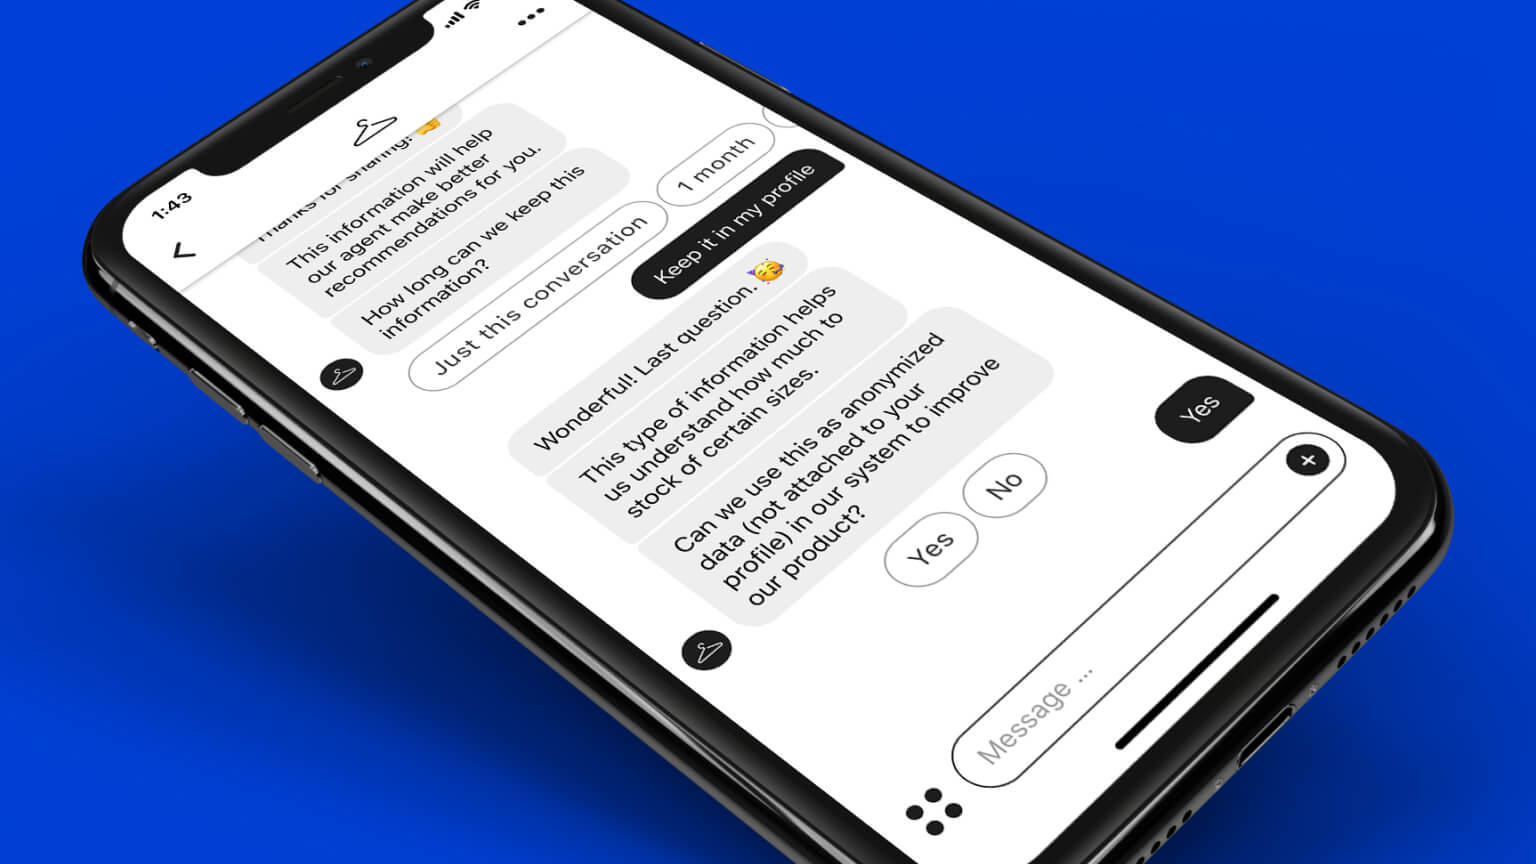 Text message with brand gathering PII and getting permission to use it for a shopper's personalization